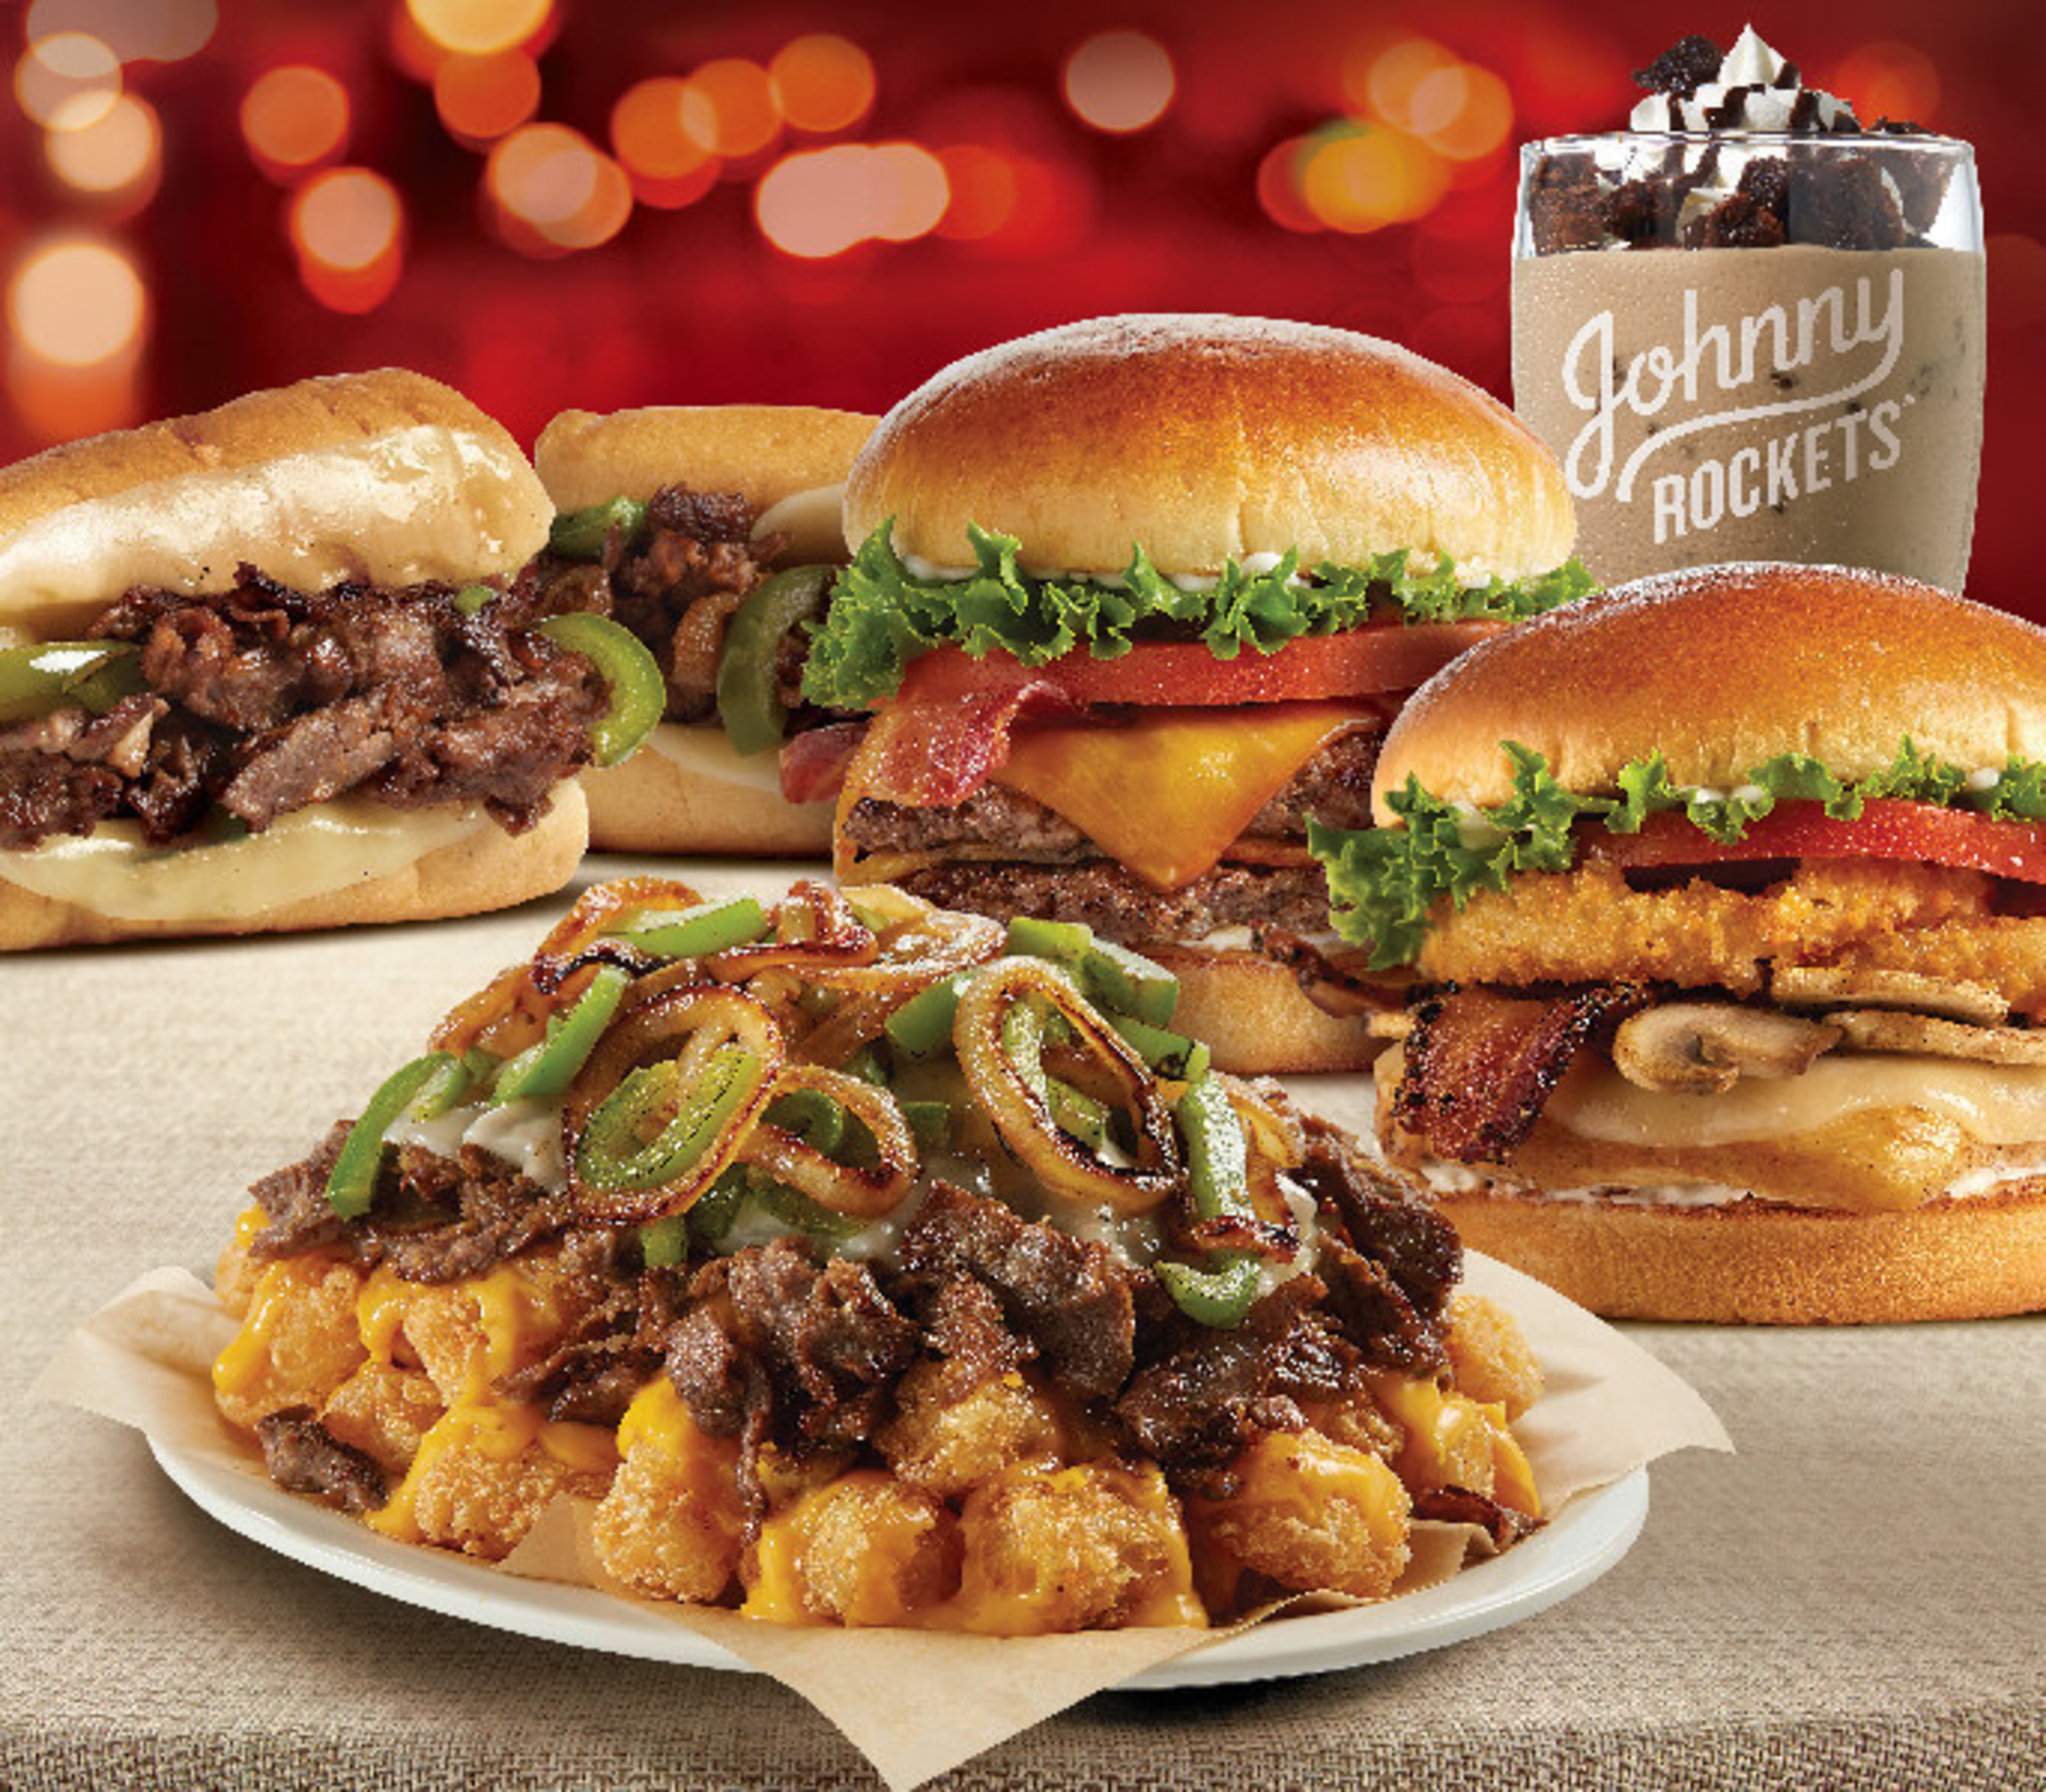 Johnny Rockets limited time winter menu debuts today at participating restaurants across the country.